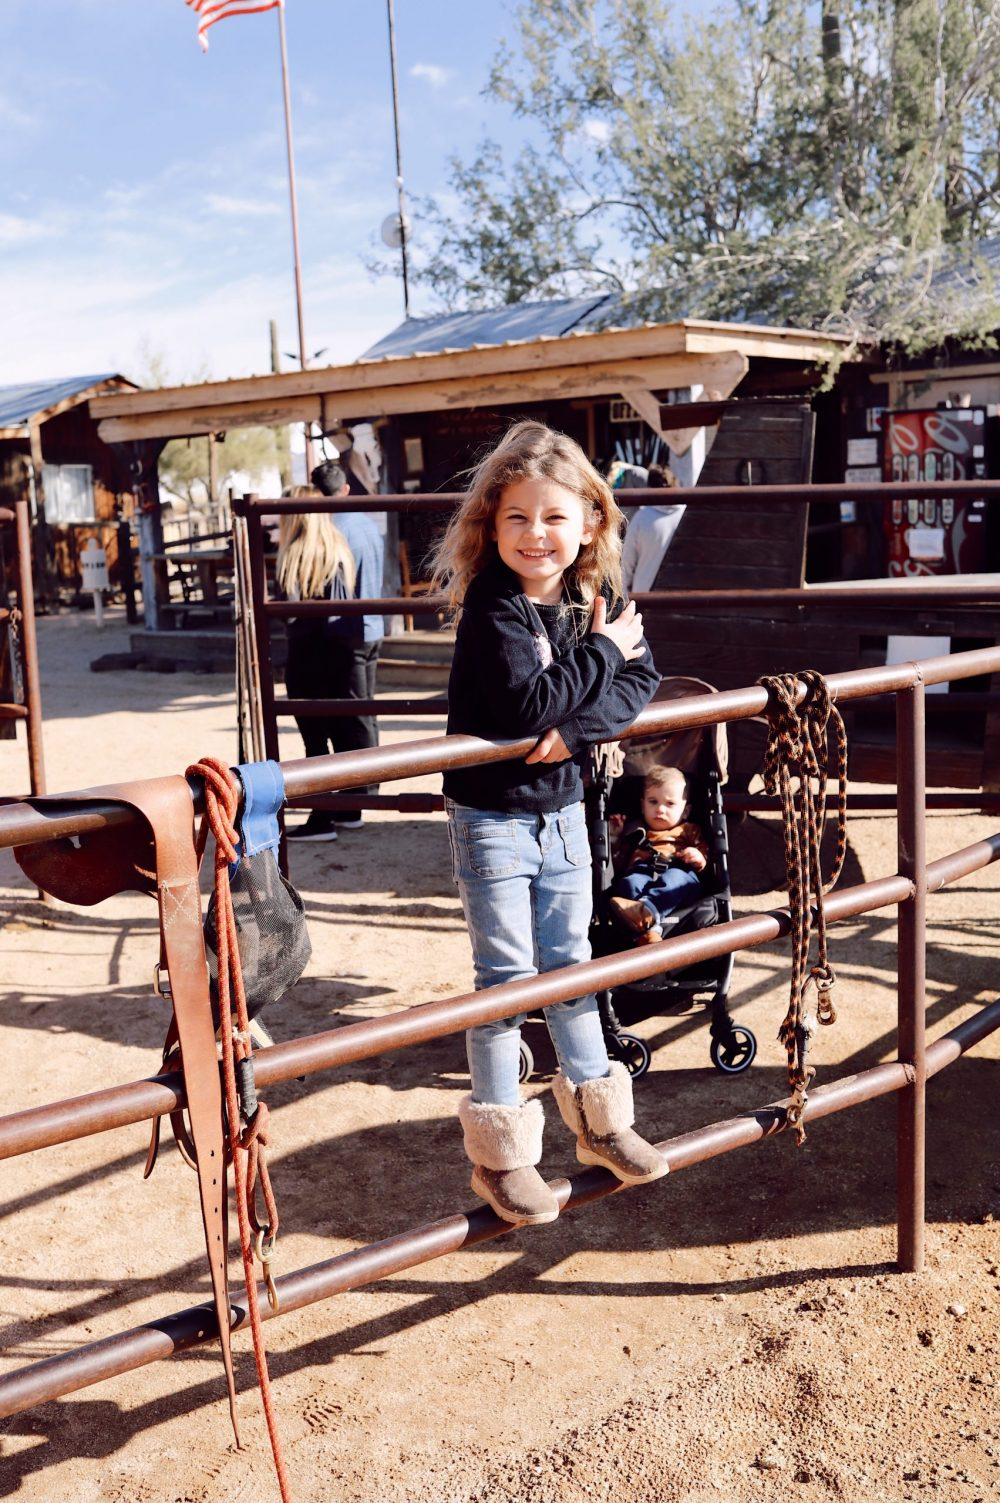 One of the Best Secret Winter Sun Destinations, Scottsdale Arizona. Horseback riding in the desert and family-friendly activities at MacDonald's Ranch. |Guide by popular Florida travel blog, Fresh Mommy Blog: image of a little girl standing on a metal fence.